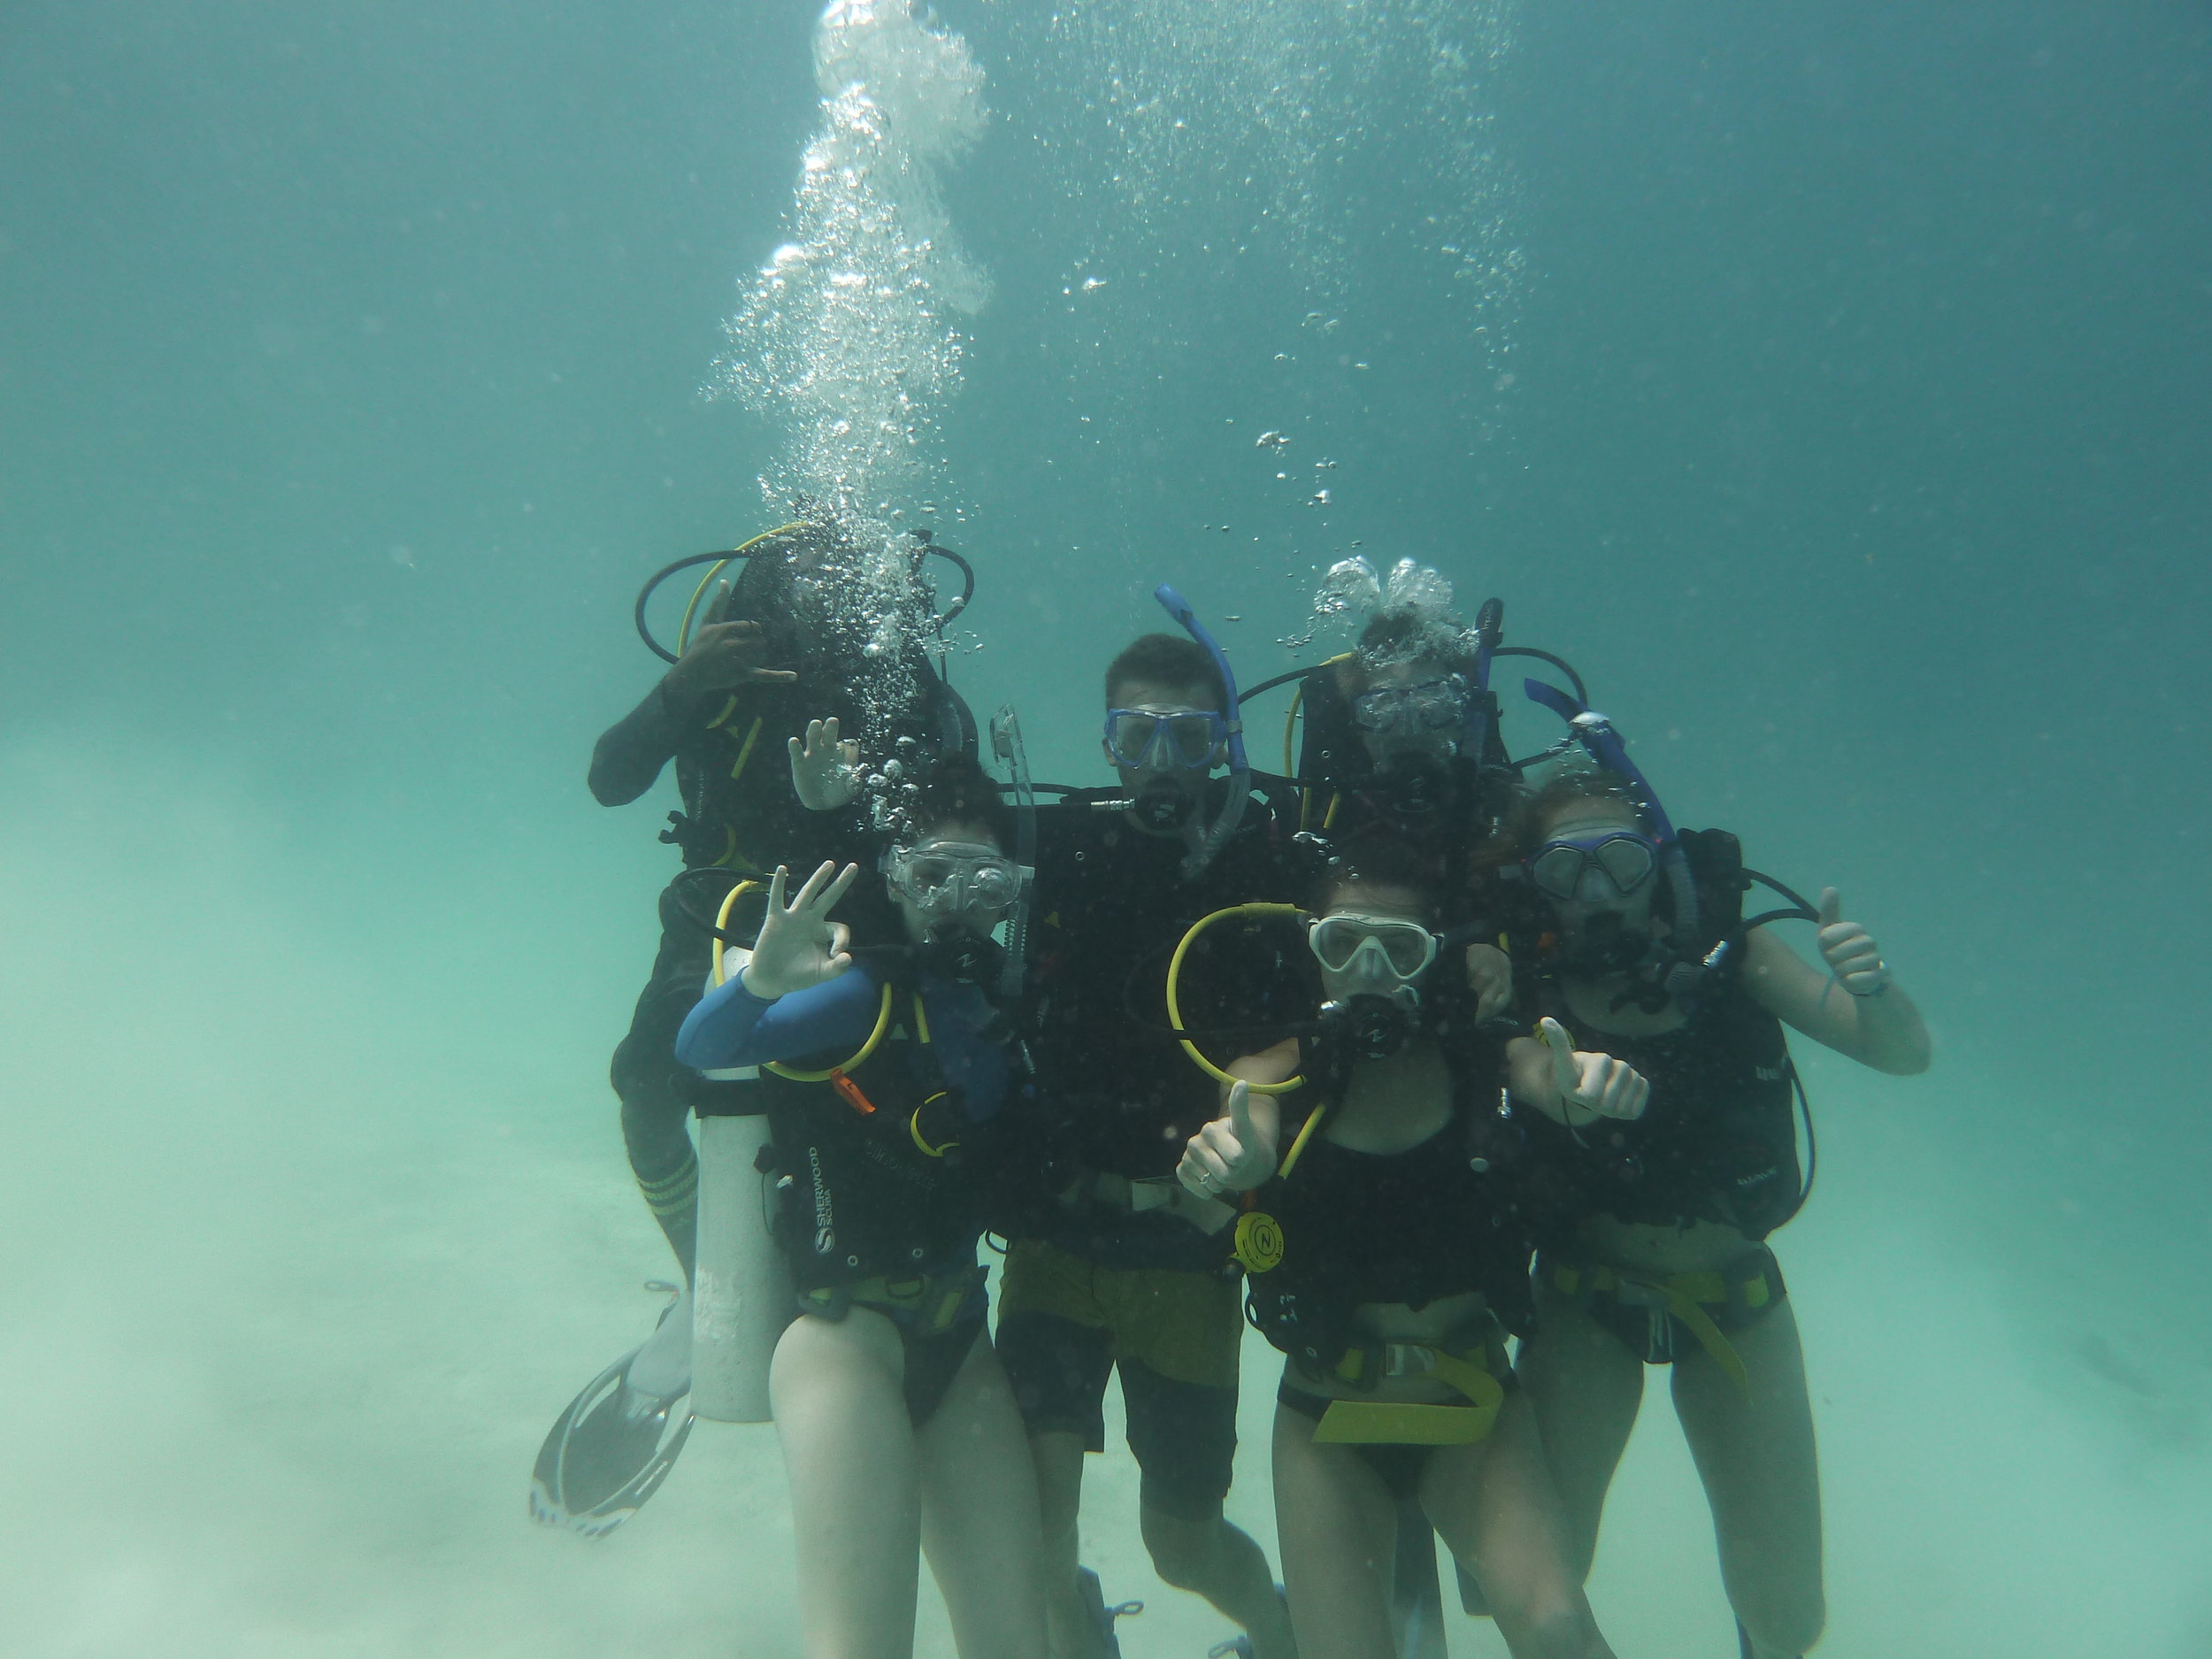 Having performed their final skill, these students are now fully certified divers.